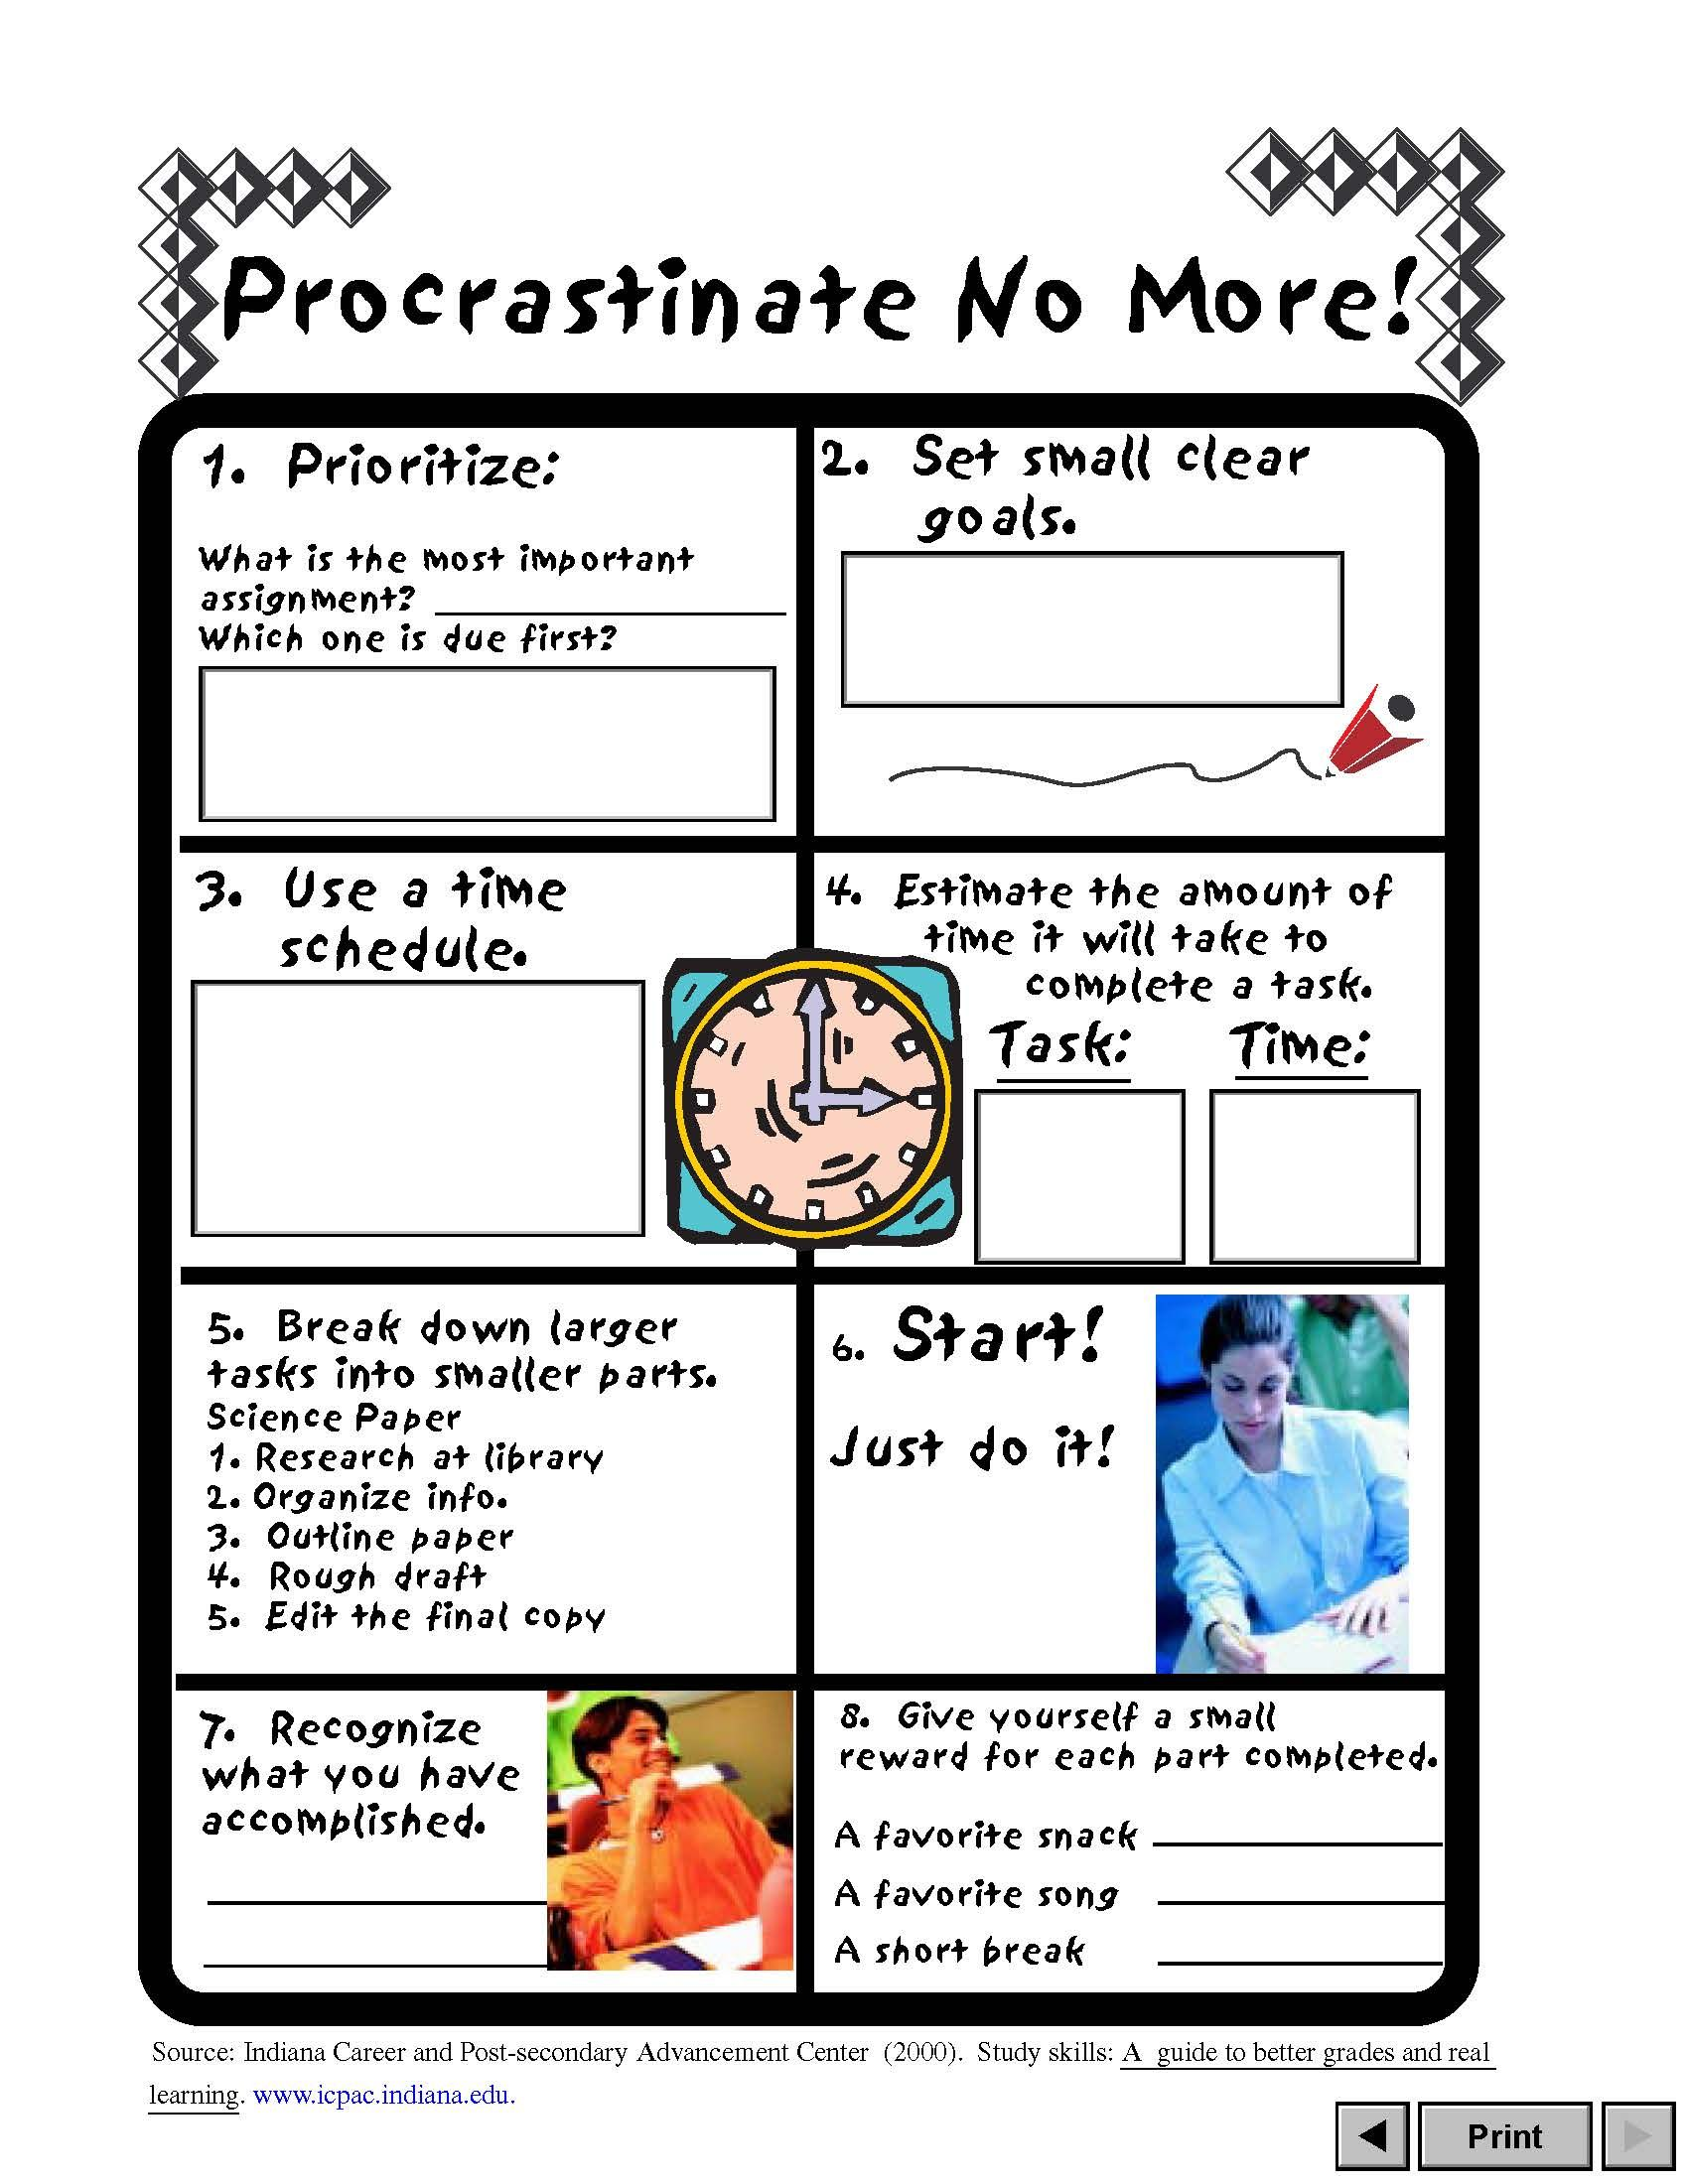 worksheet Schedule A Worksheet procrastinate no more va career view a worksheet to help prioritize schedule